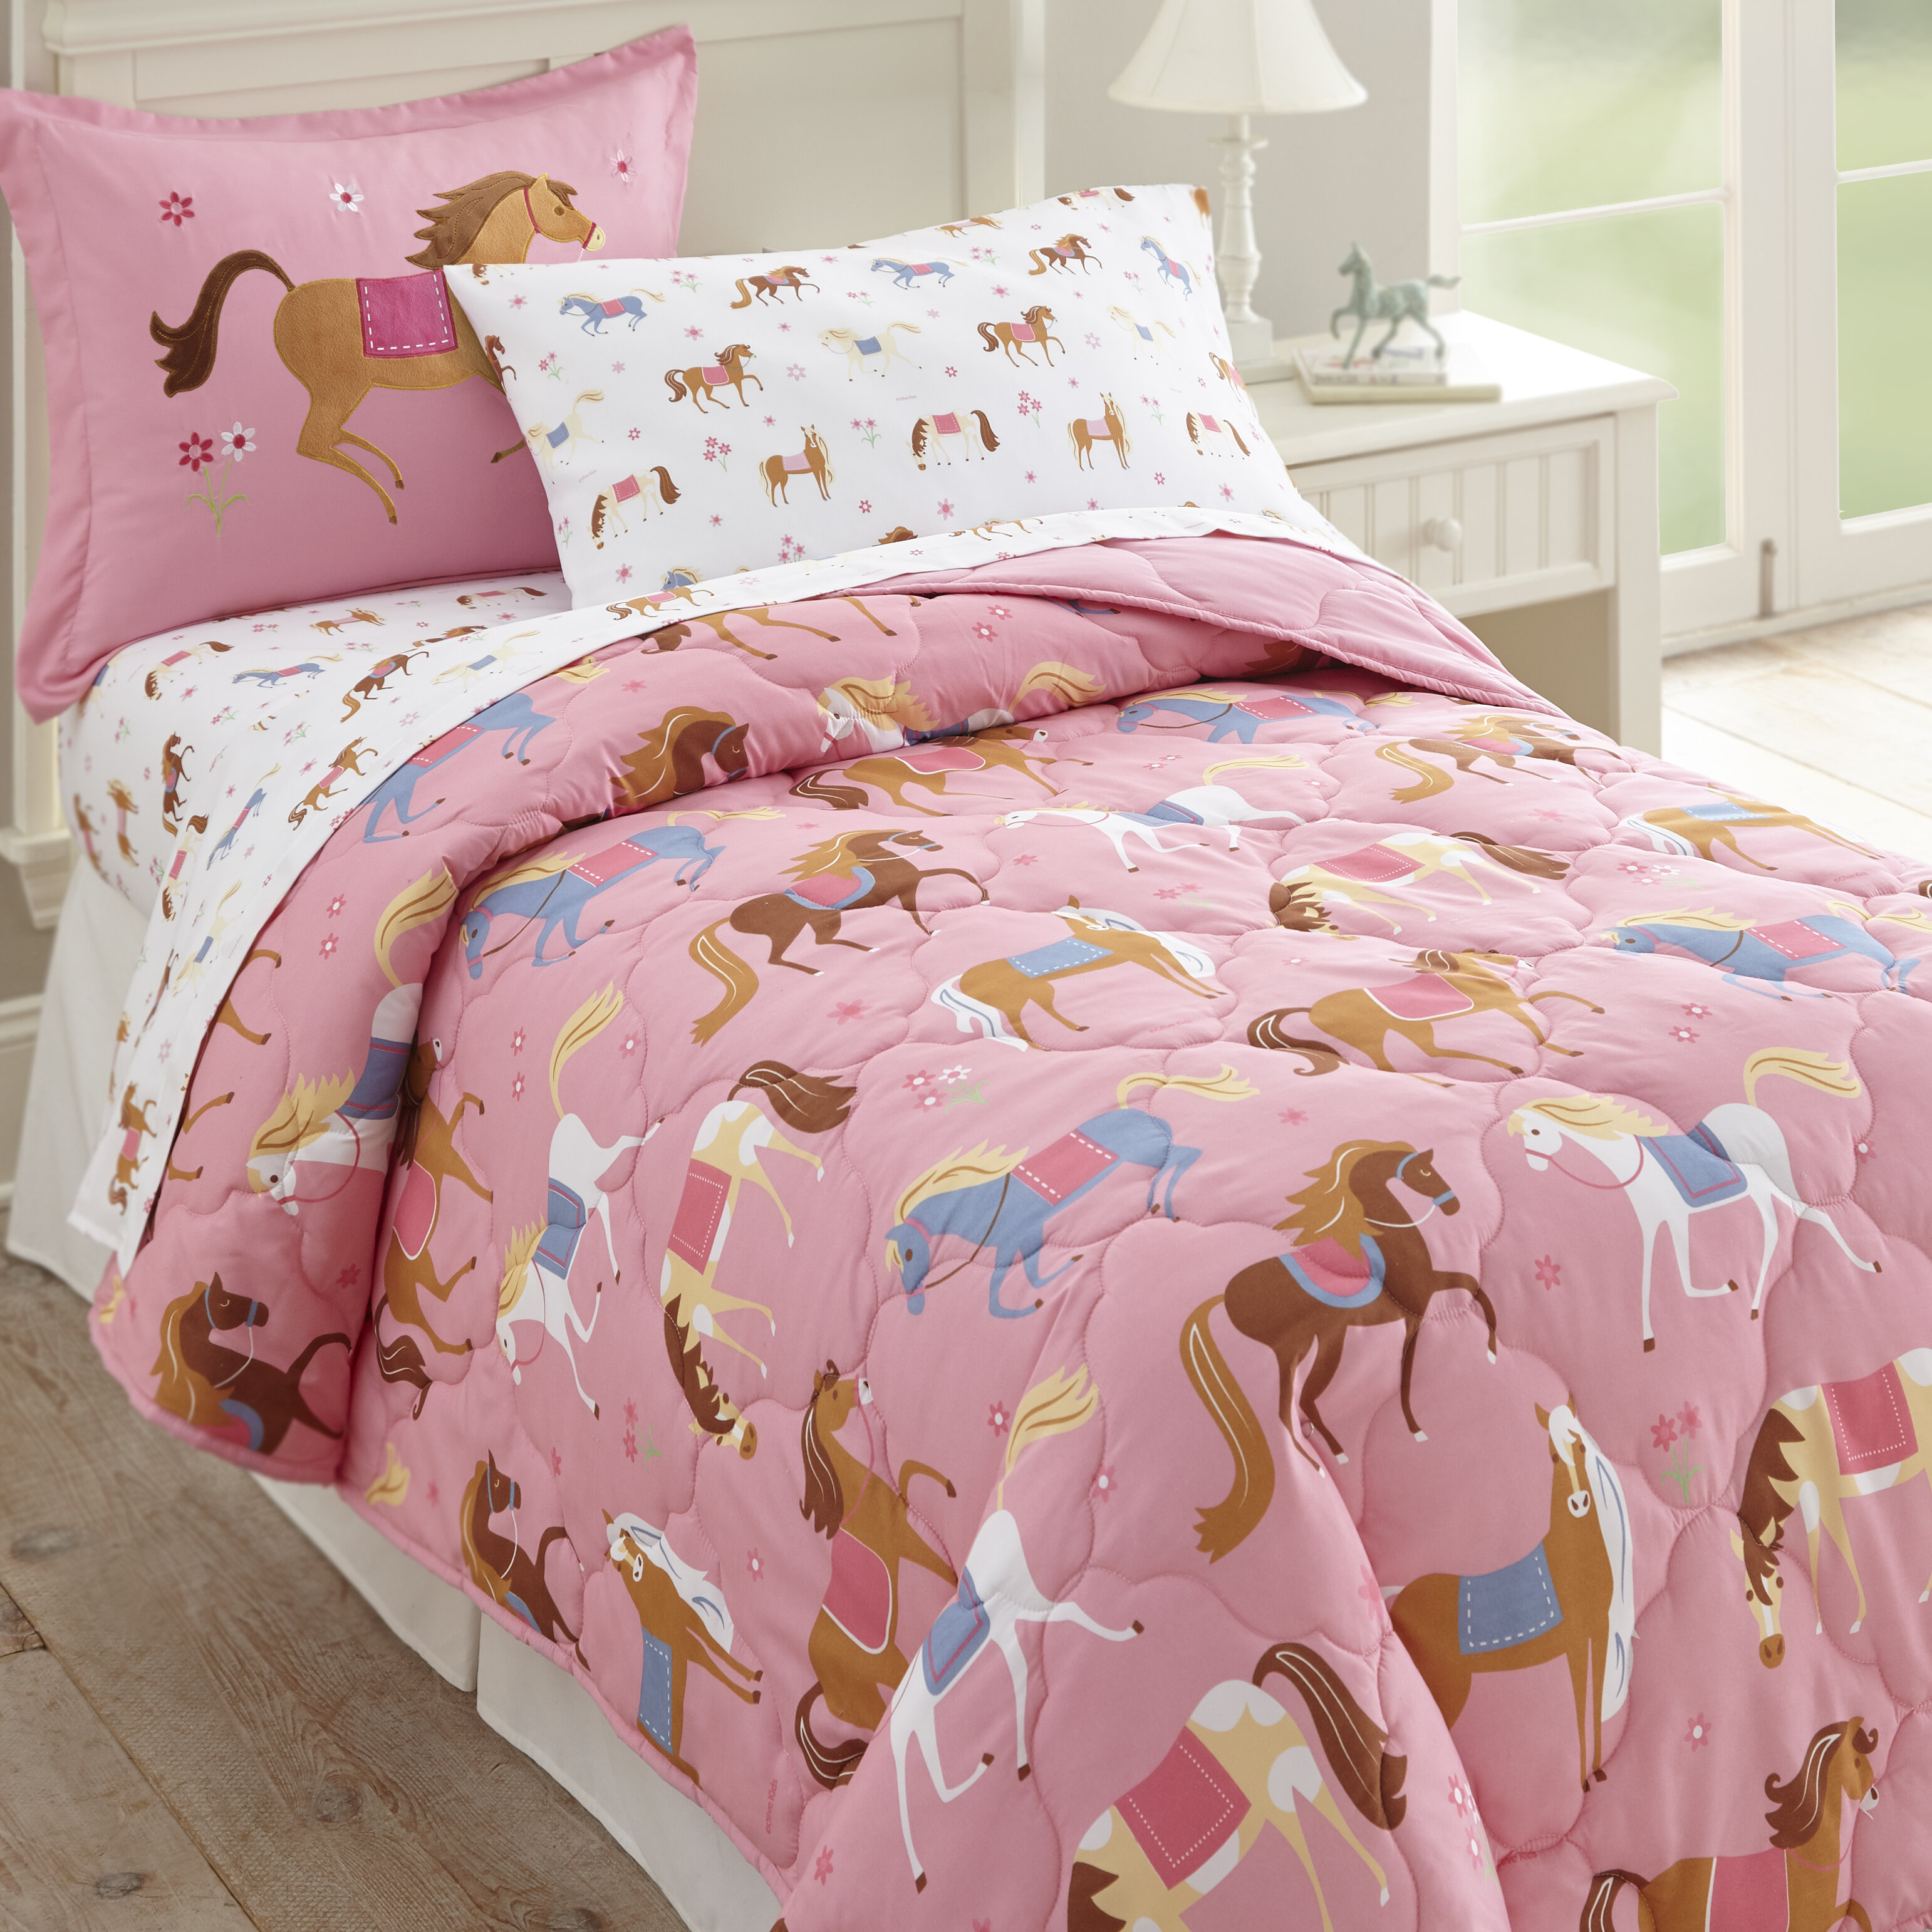 Pink Duvet Cover Microfiber Washable Cotton Quilt Cover Pillow Case Bedding